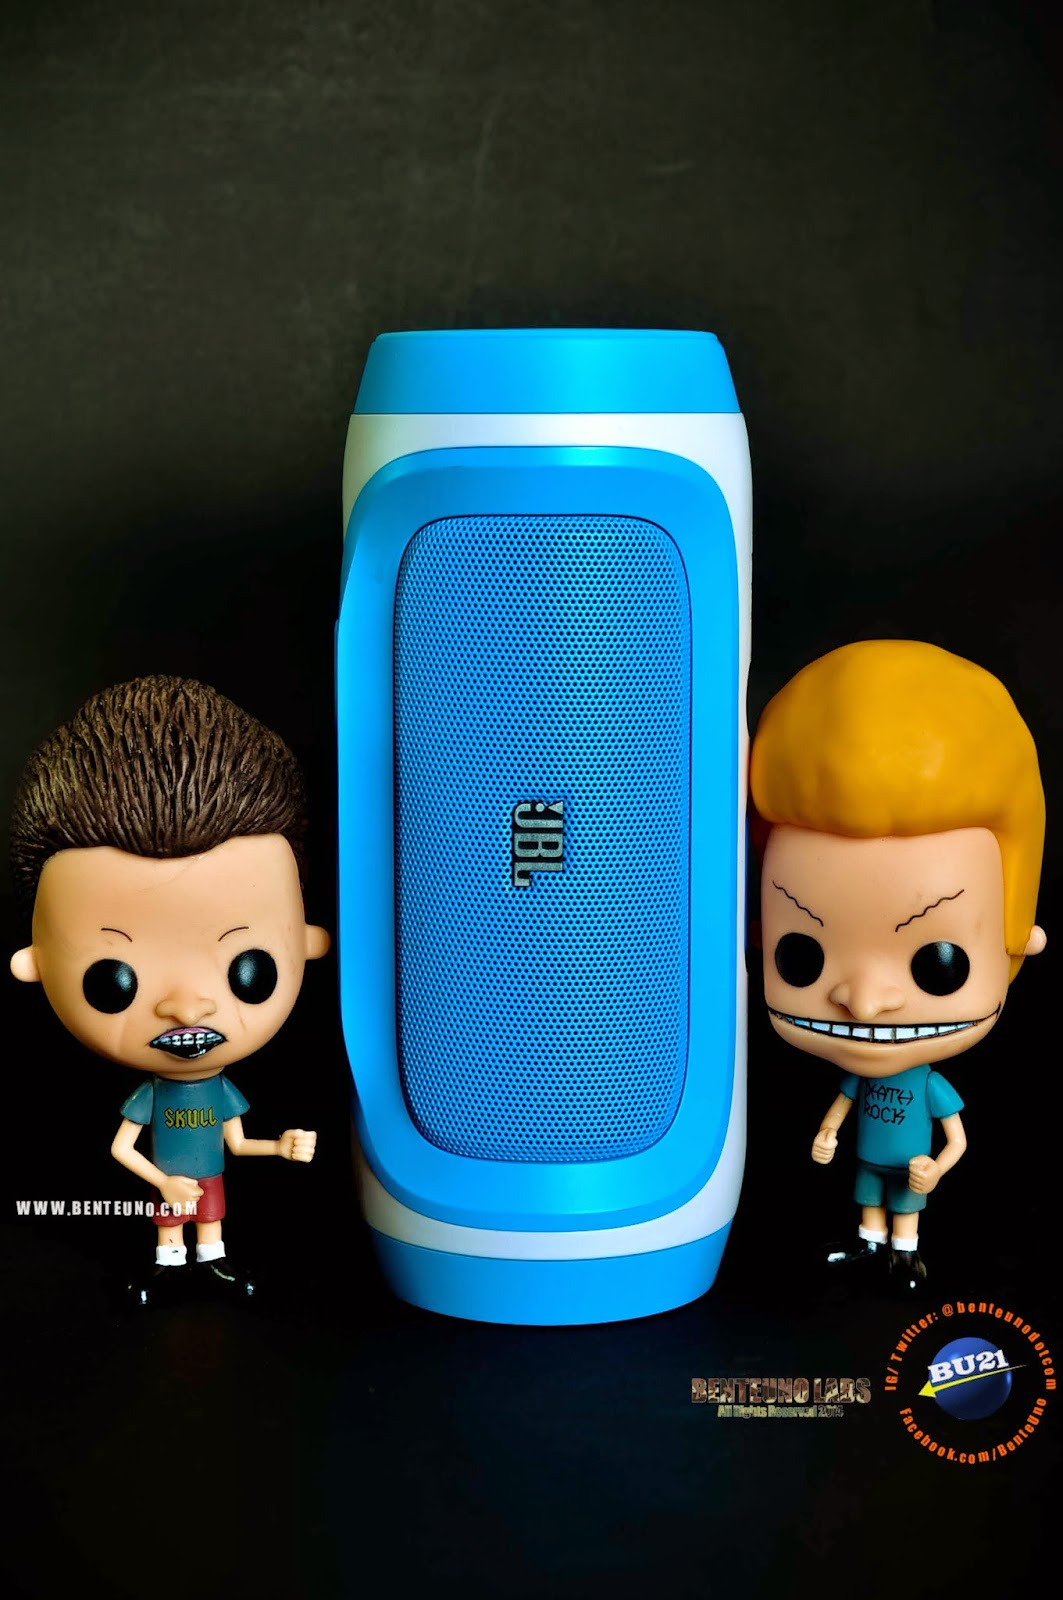 JBL Charge by Benteuno.com